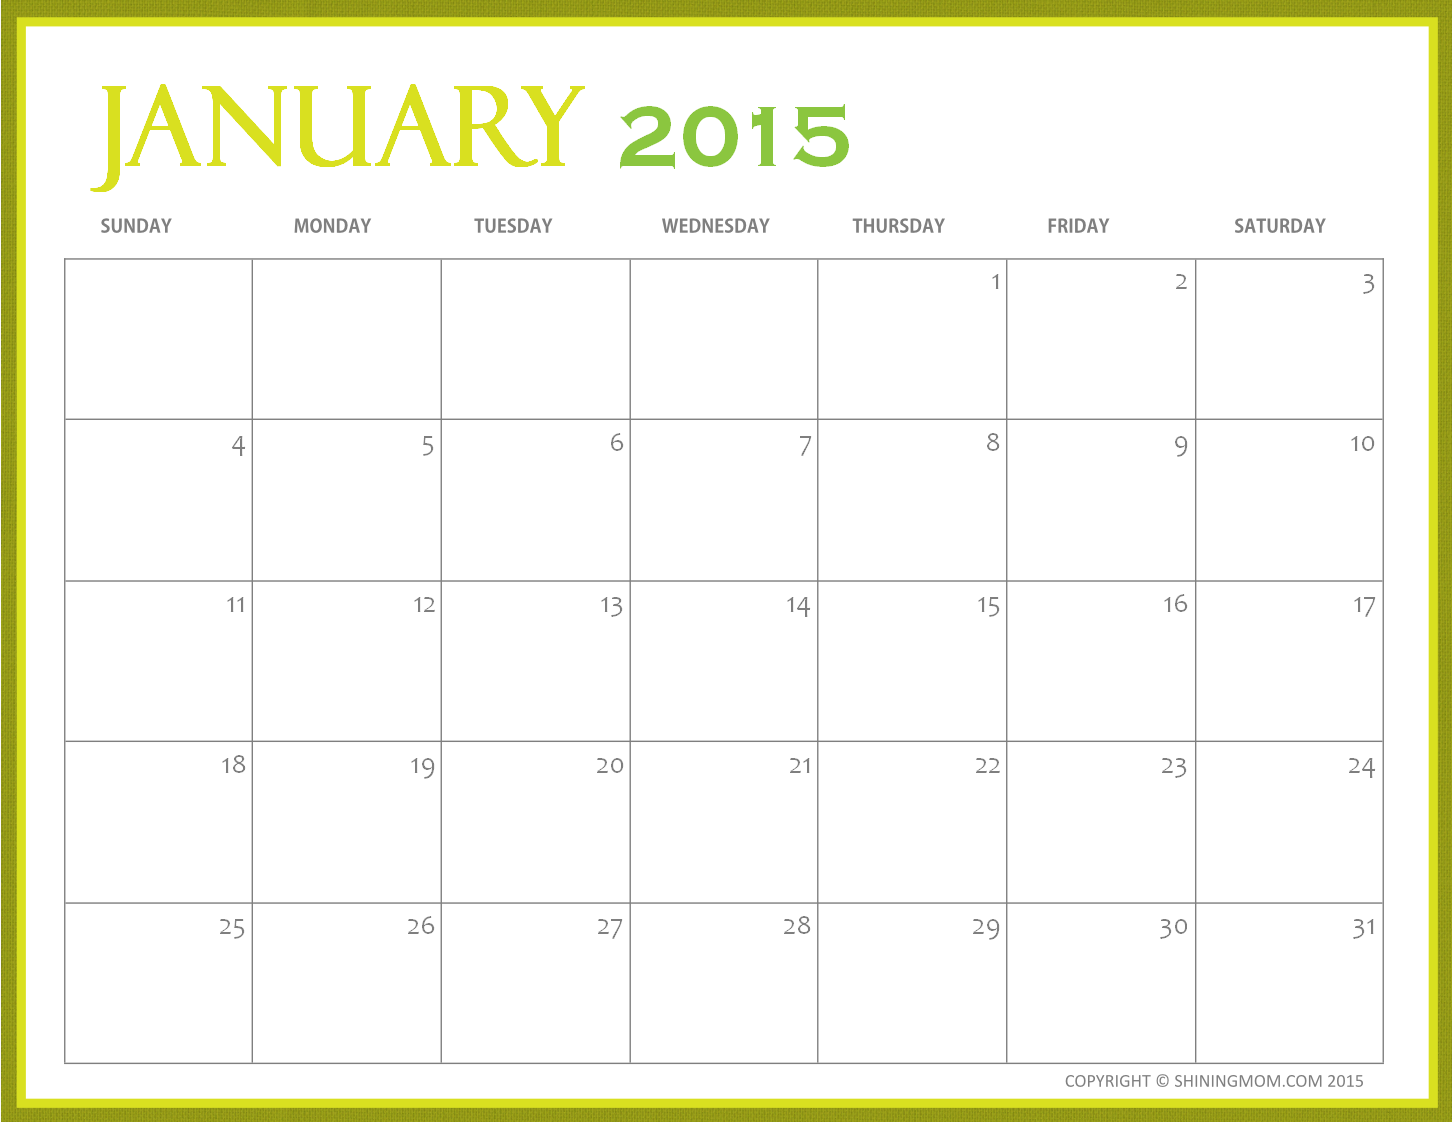 Search Results for: Printable Calendar Jan 2015 8x10